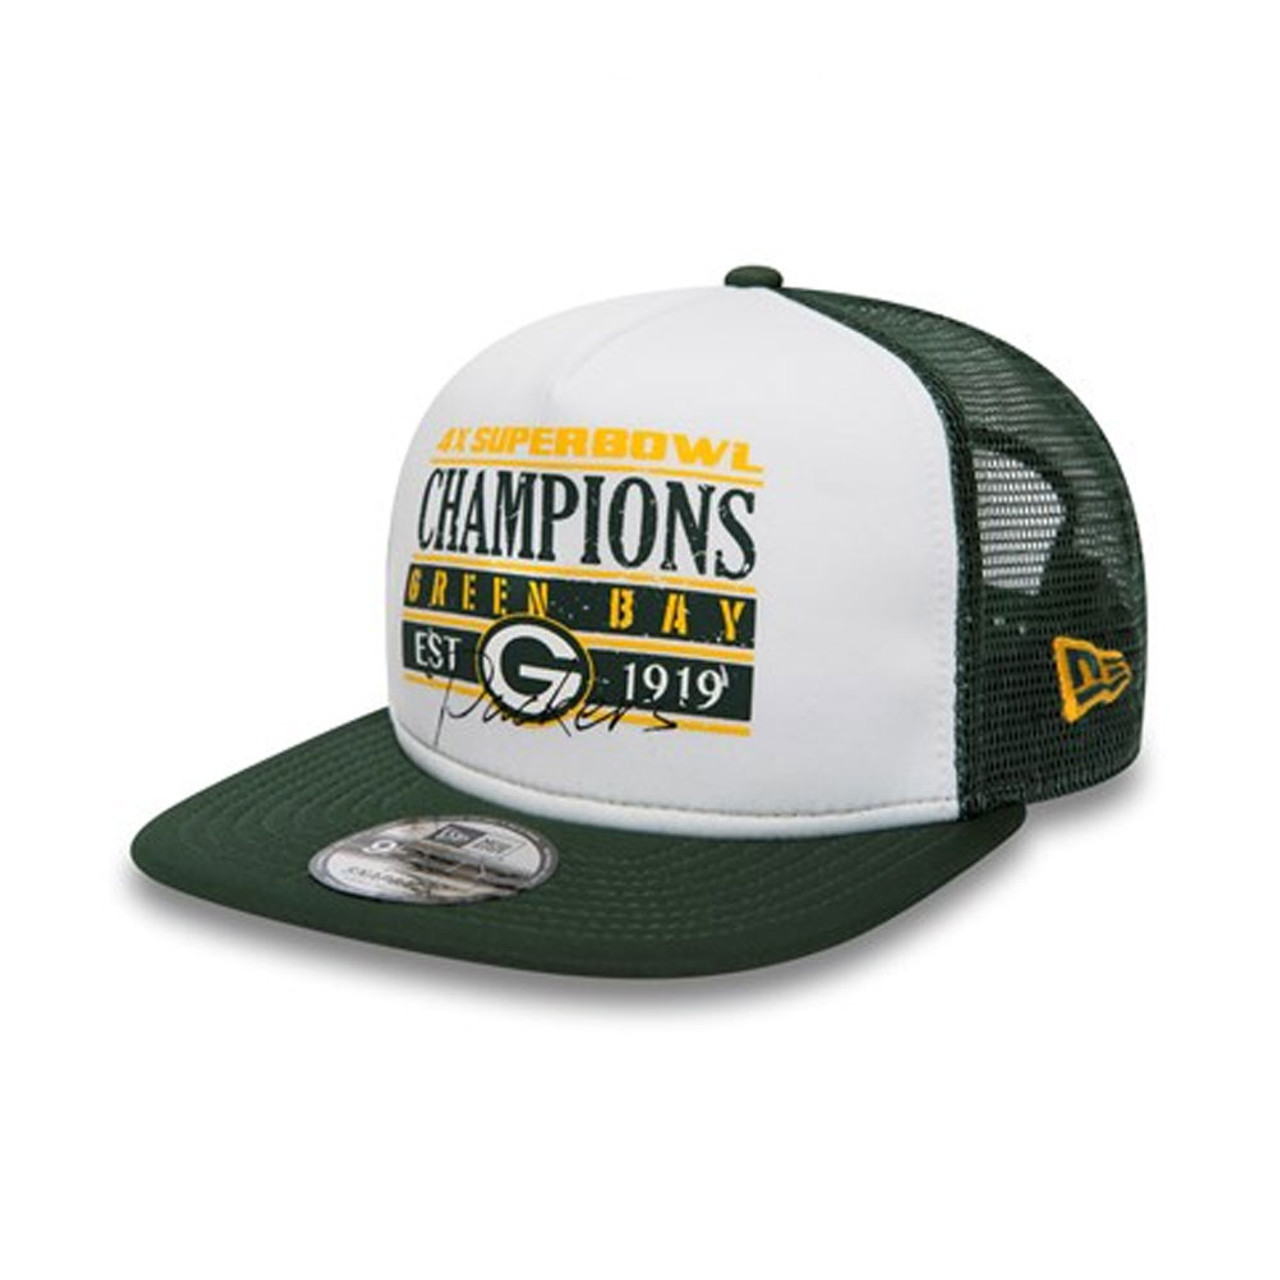 c686032a7ed NEW ERA Boston Celtics Trucker cap  black white green  NEW ERA Green Bay  Packers Trucker cap medium large  white green